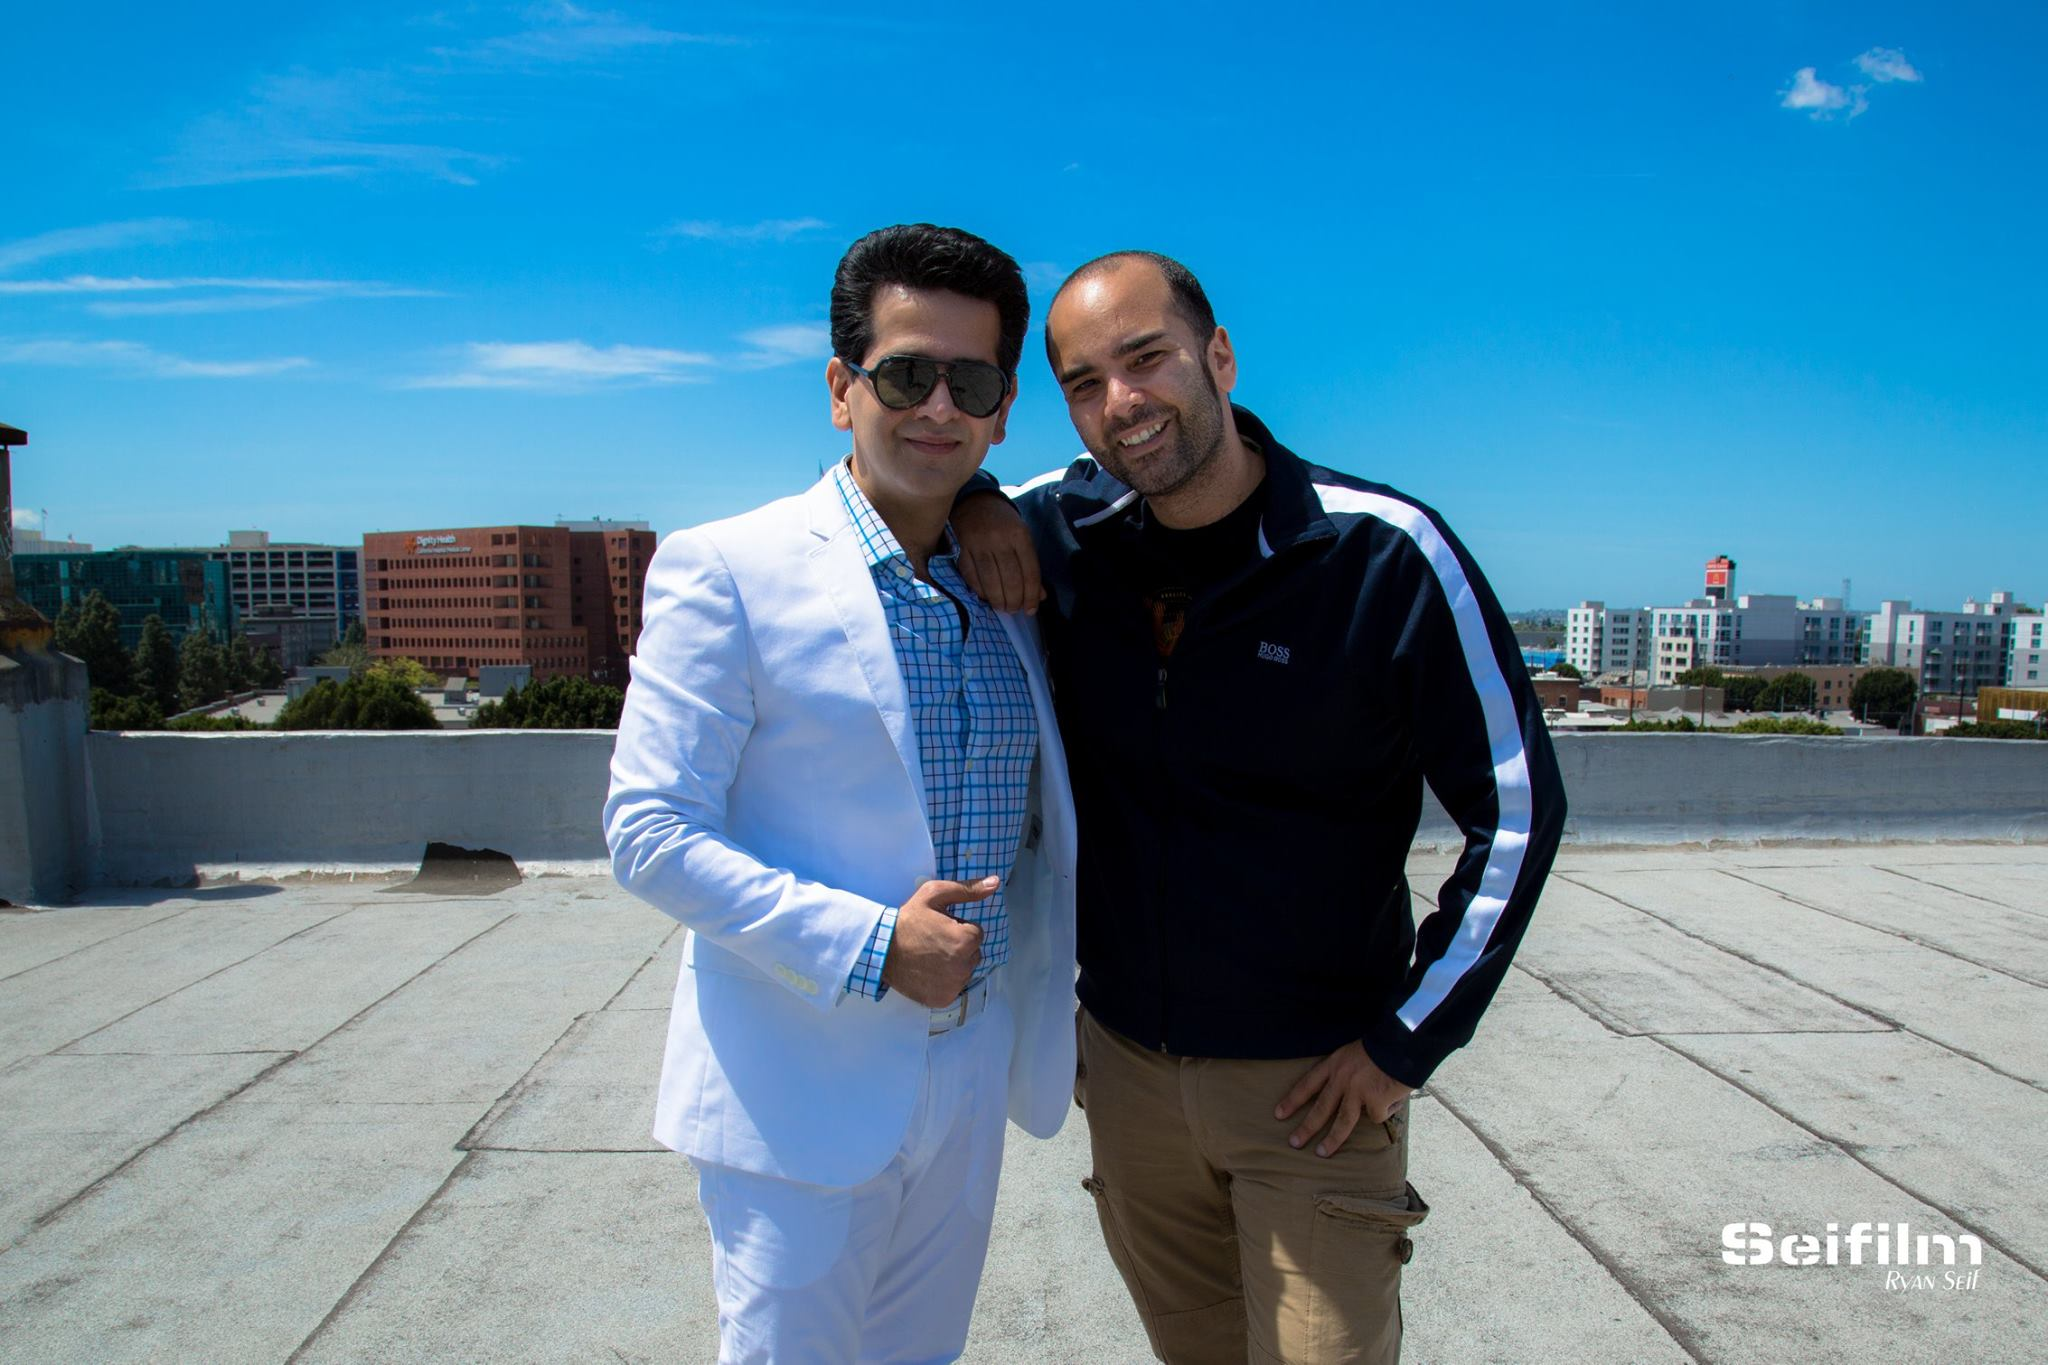 WITH HAMID INTERNATIONAL POP ARTIST